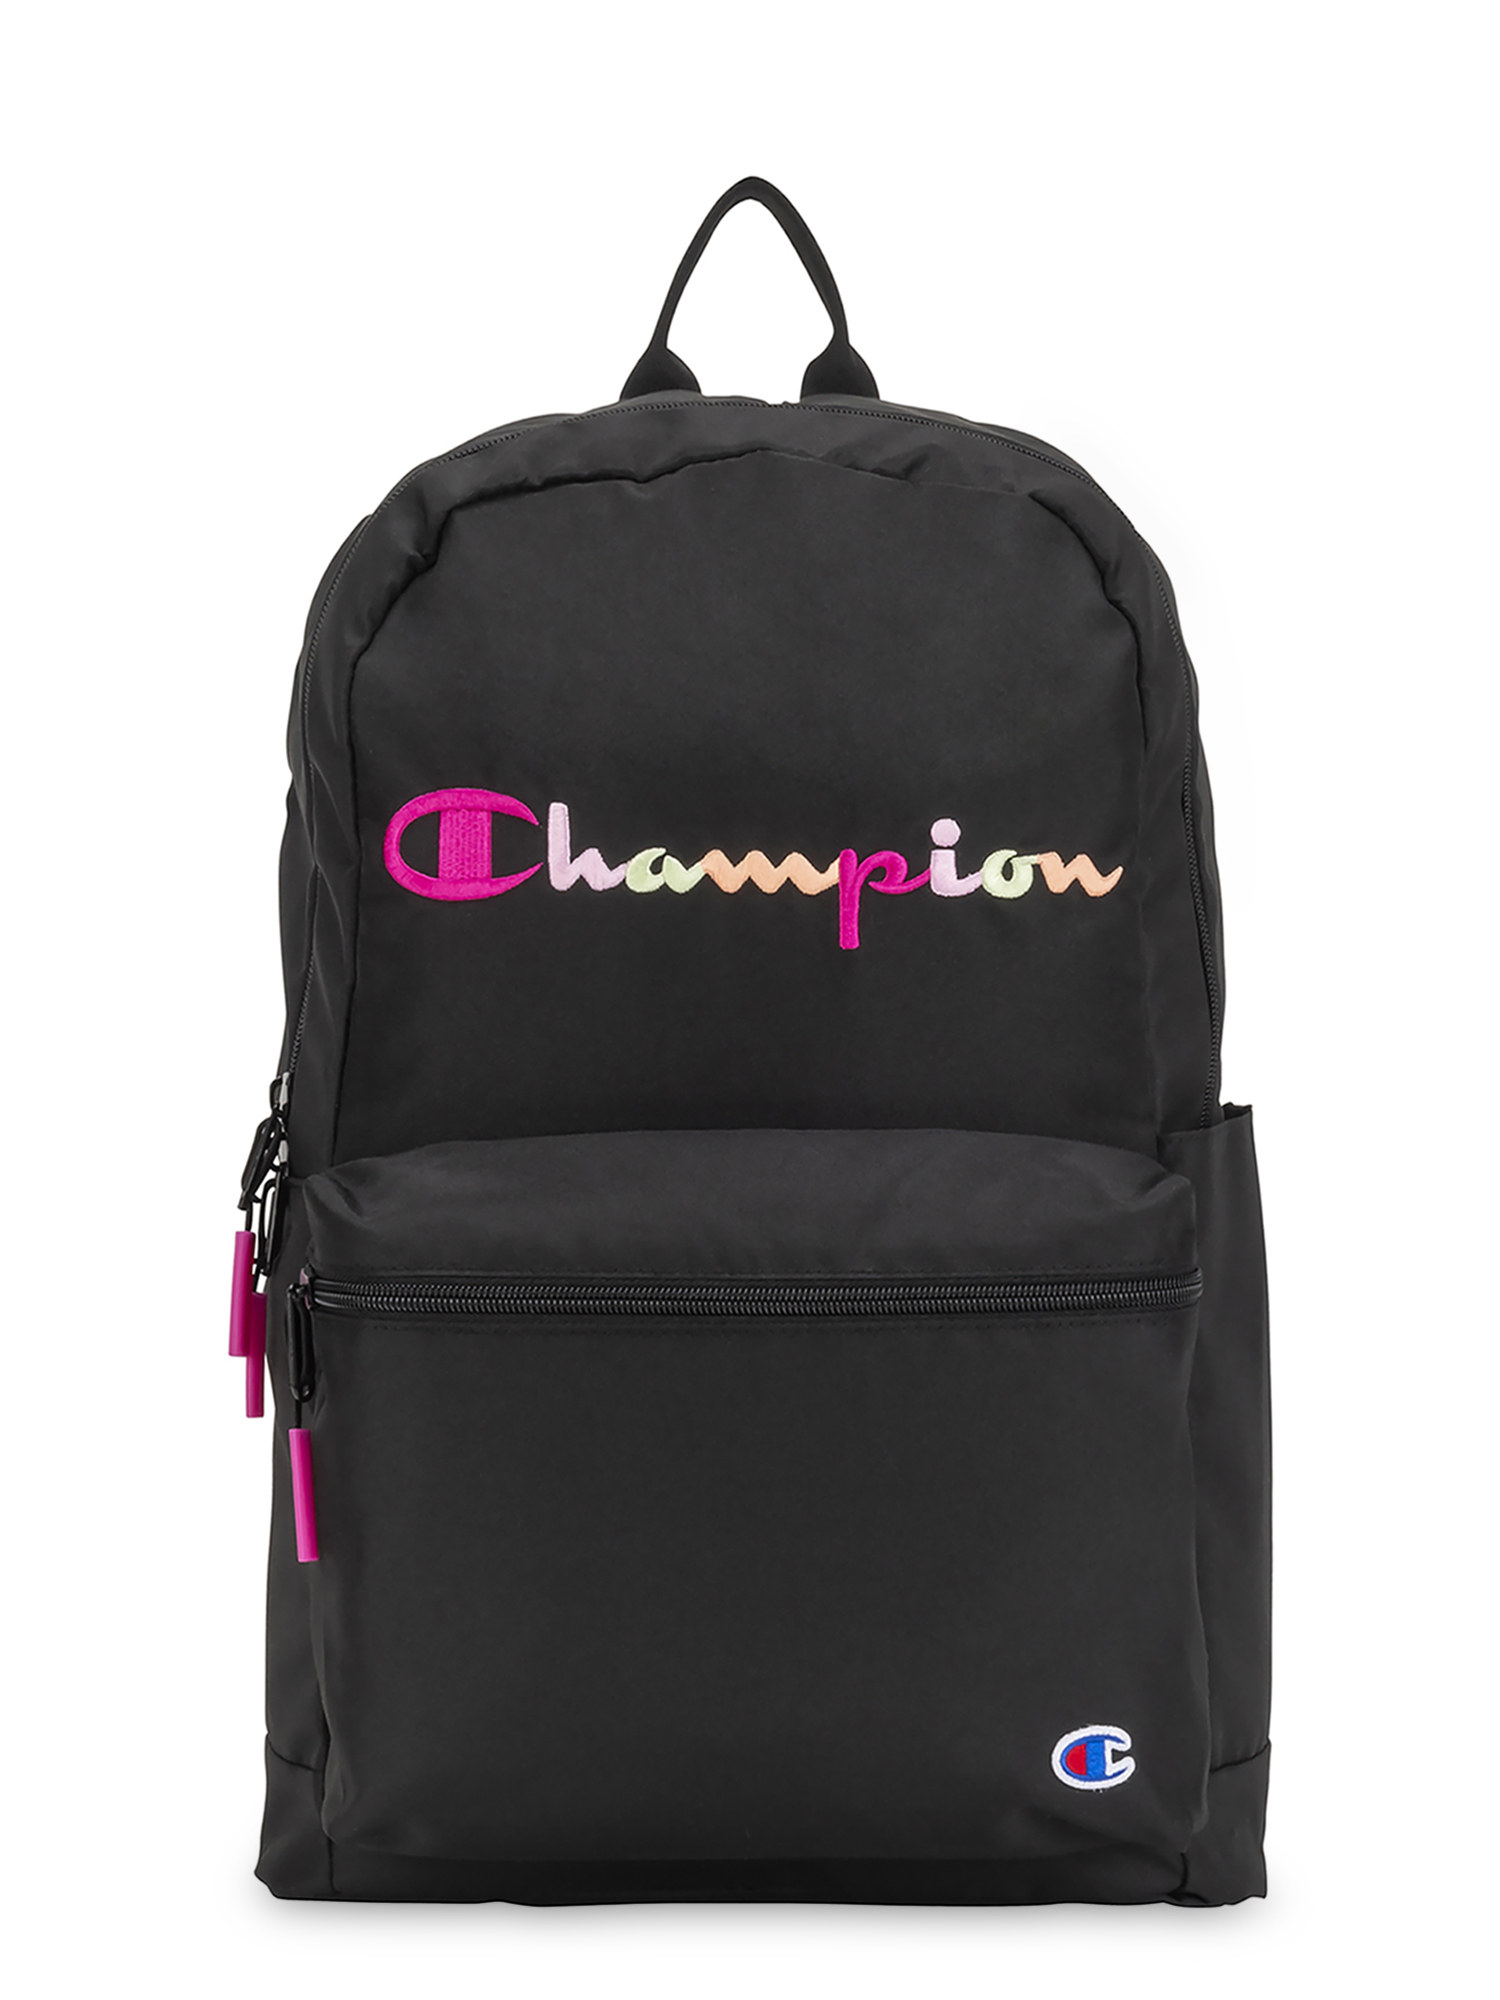 The black backpack with pink and white writing